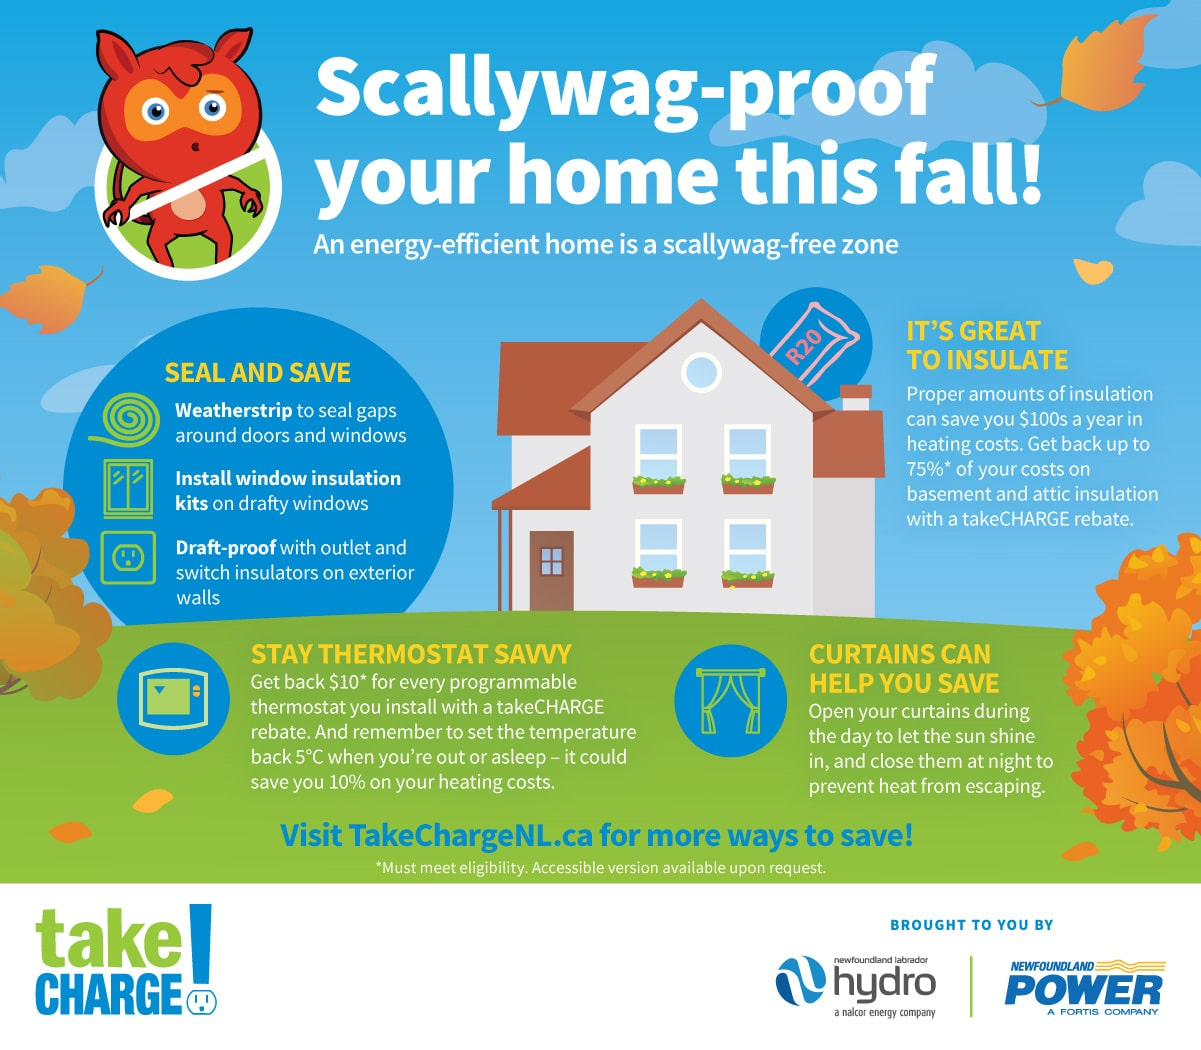 Scally-wag proof your home this fall!